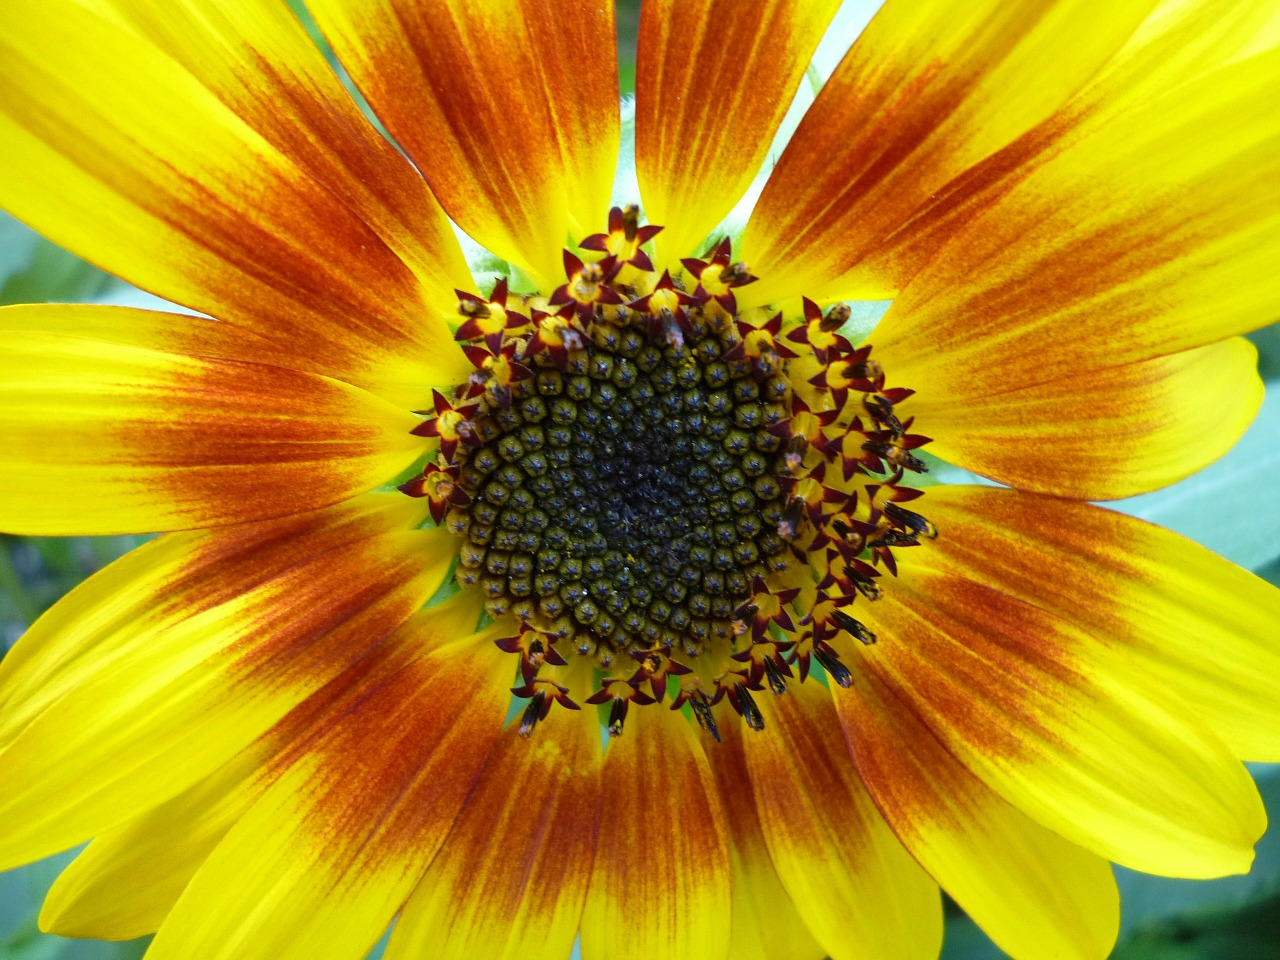 composites sun flower seeds free photo